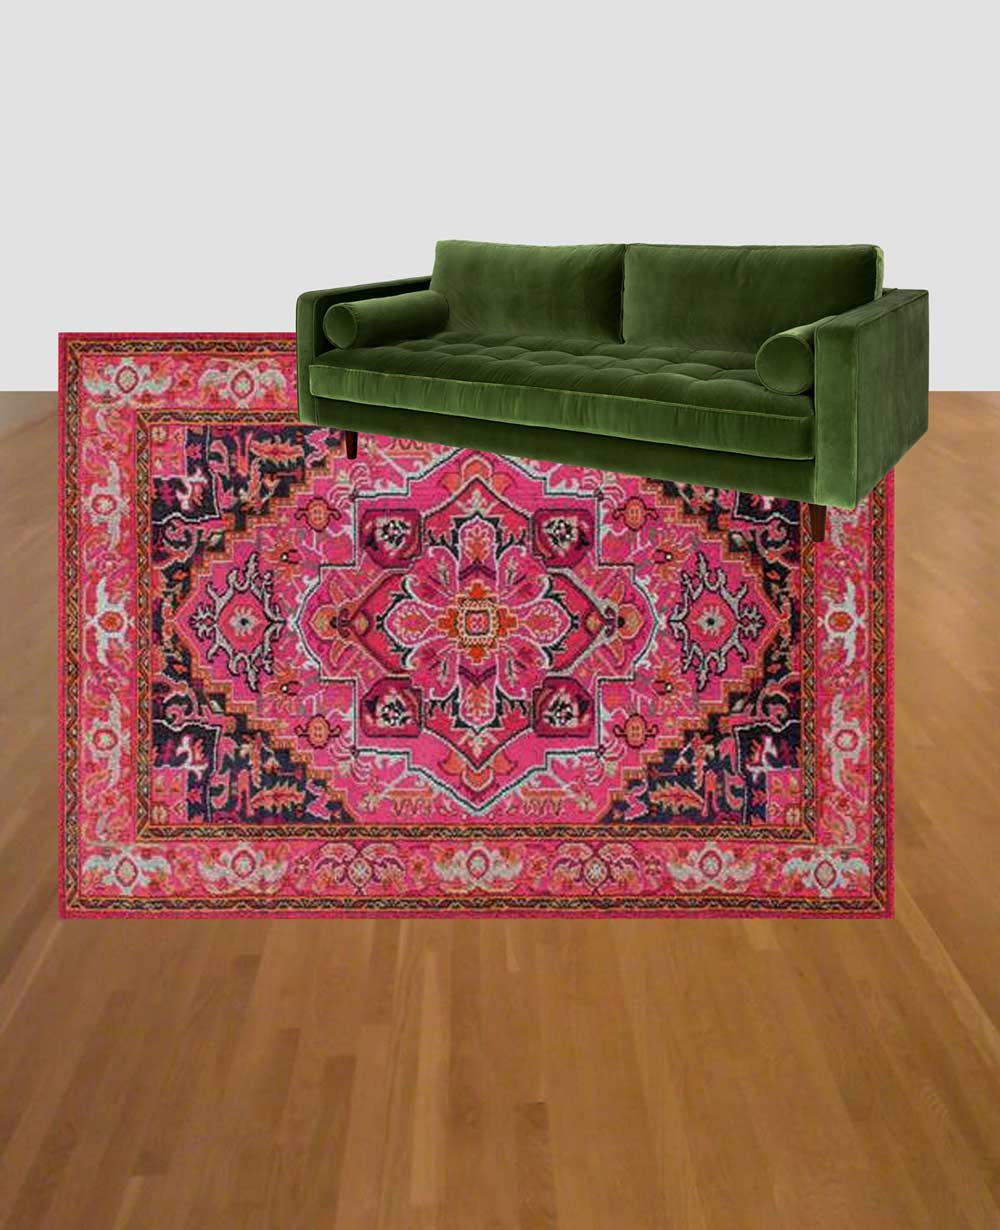 Green couch and pink rug combo: Article Sven Grass Green Velvet couch with Rugs USA Chroma Center Medallion mockup